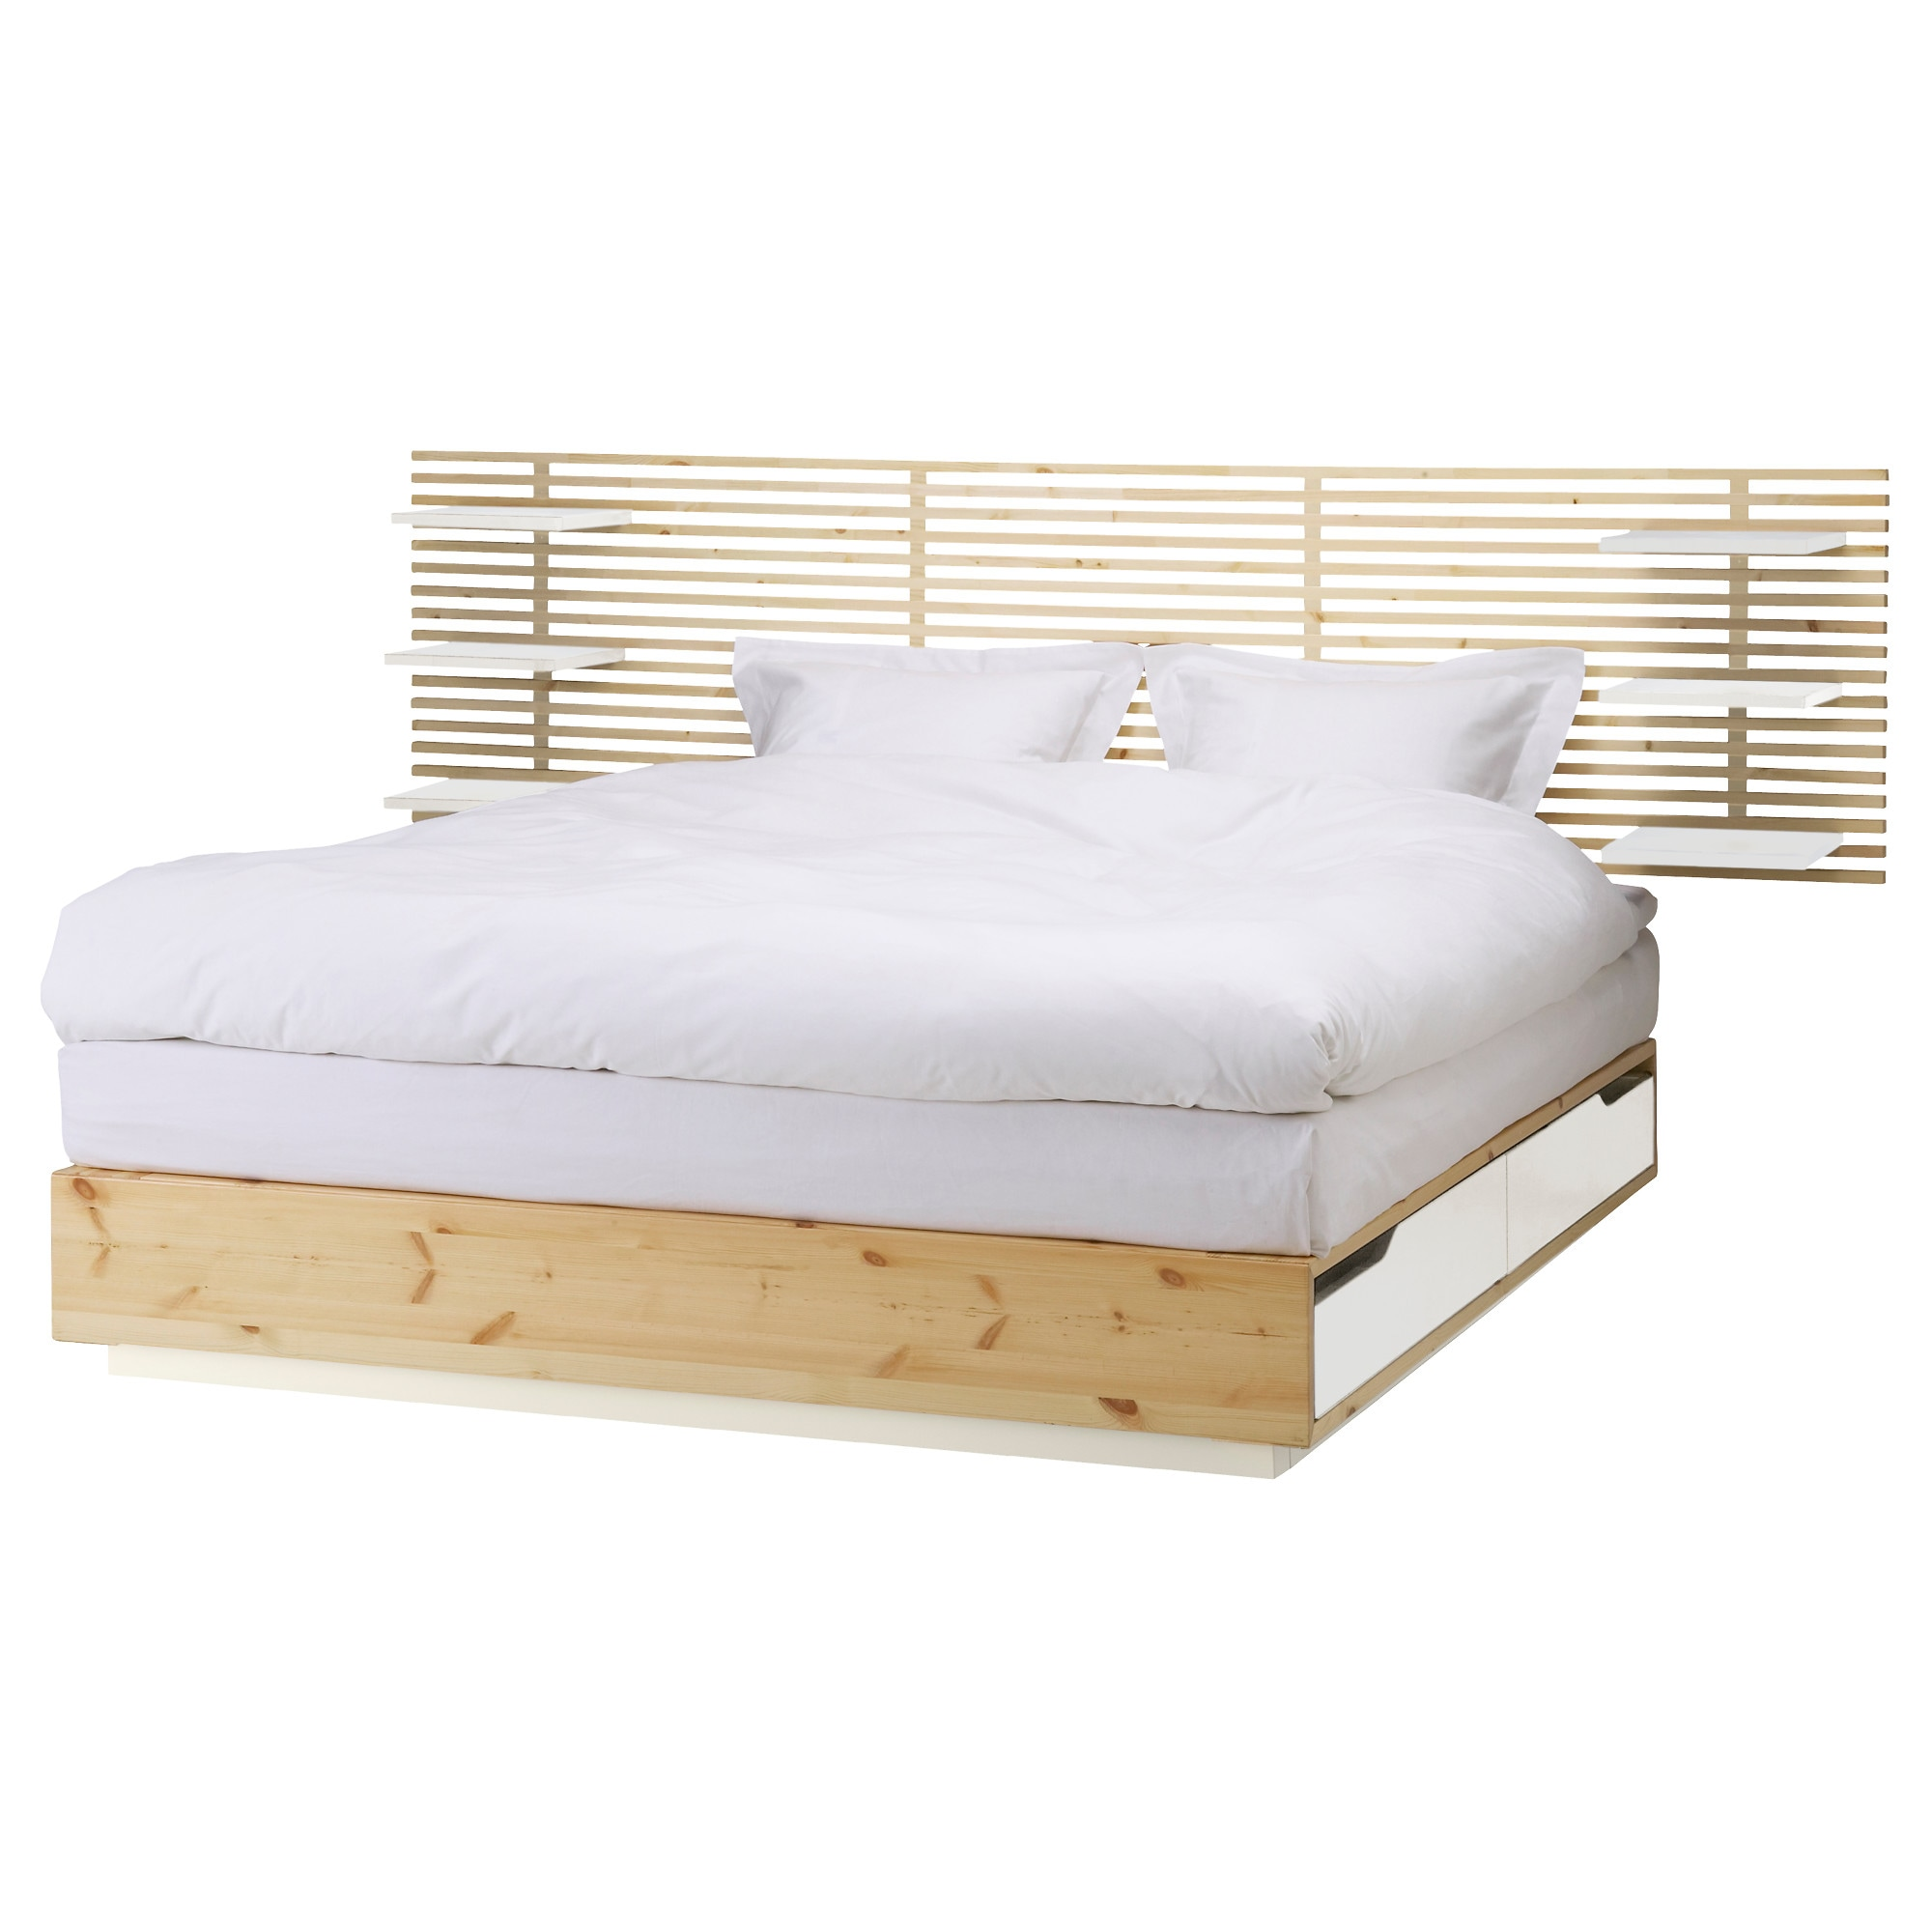 MANDAL Bed frame with headboard 160x202 cm IKEA